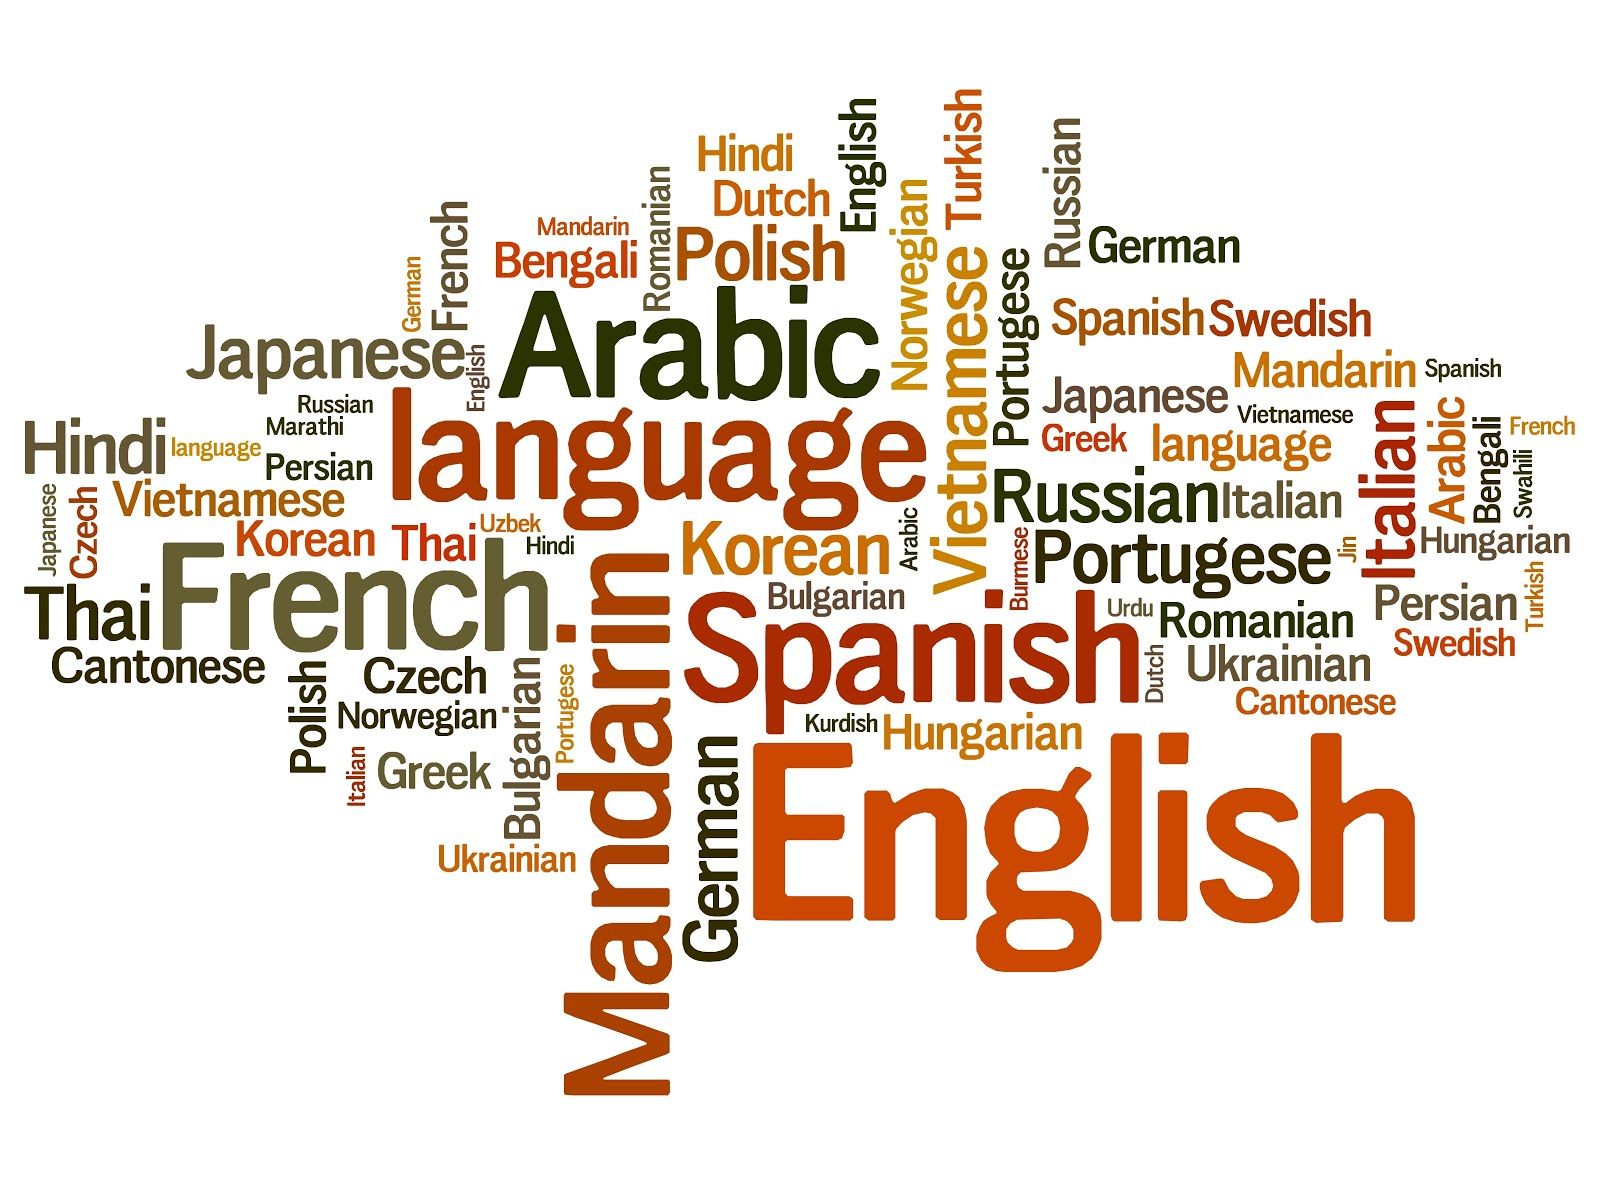 Aiflc  offers Foreign language translation services